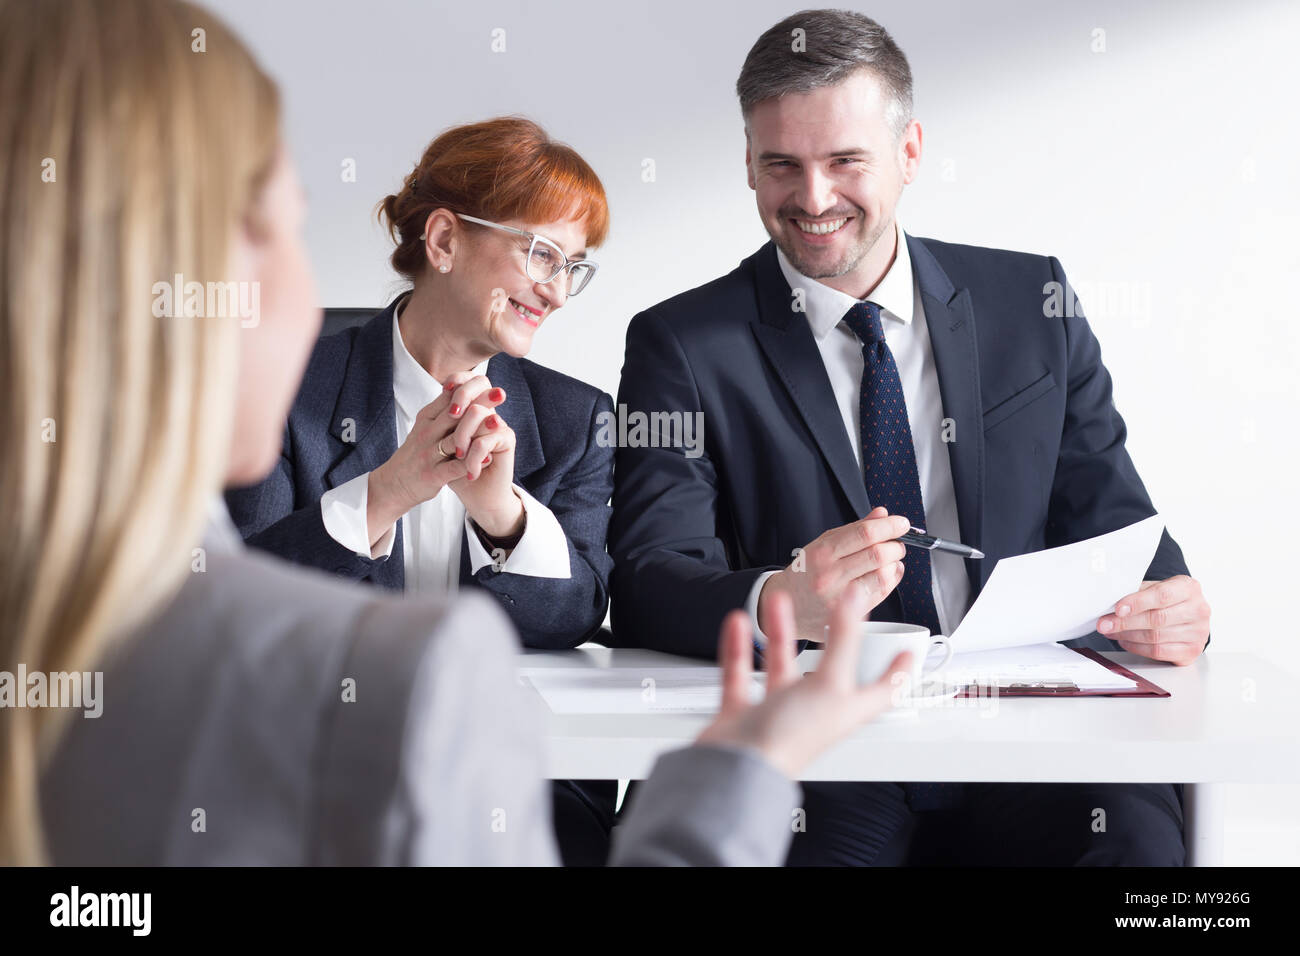 Job applicant back view and two elegant corporate workers - Stock Image